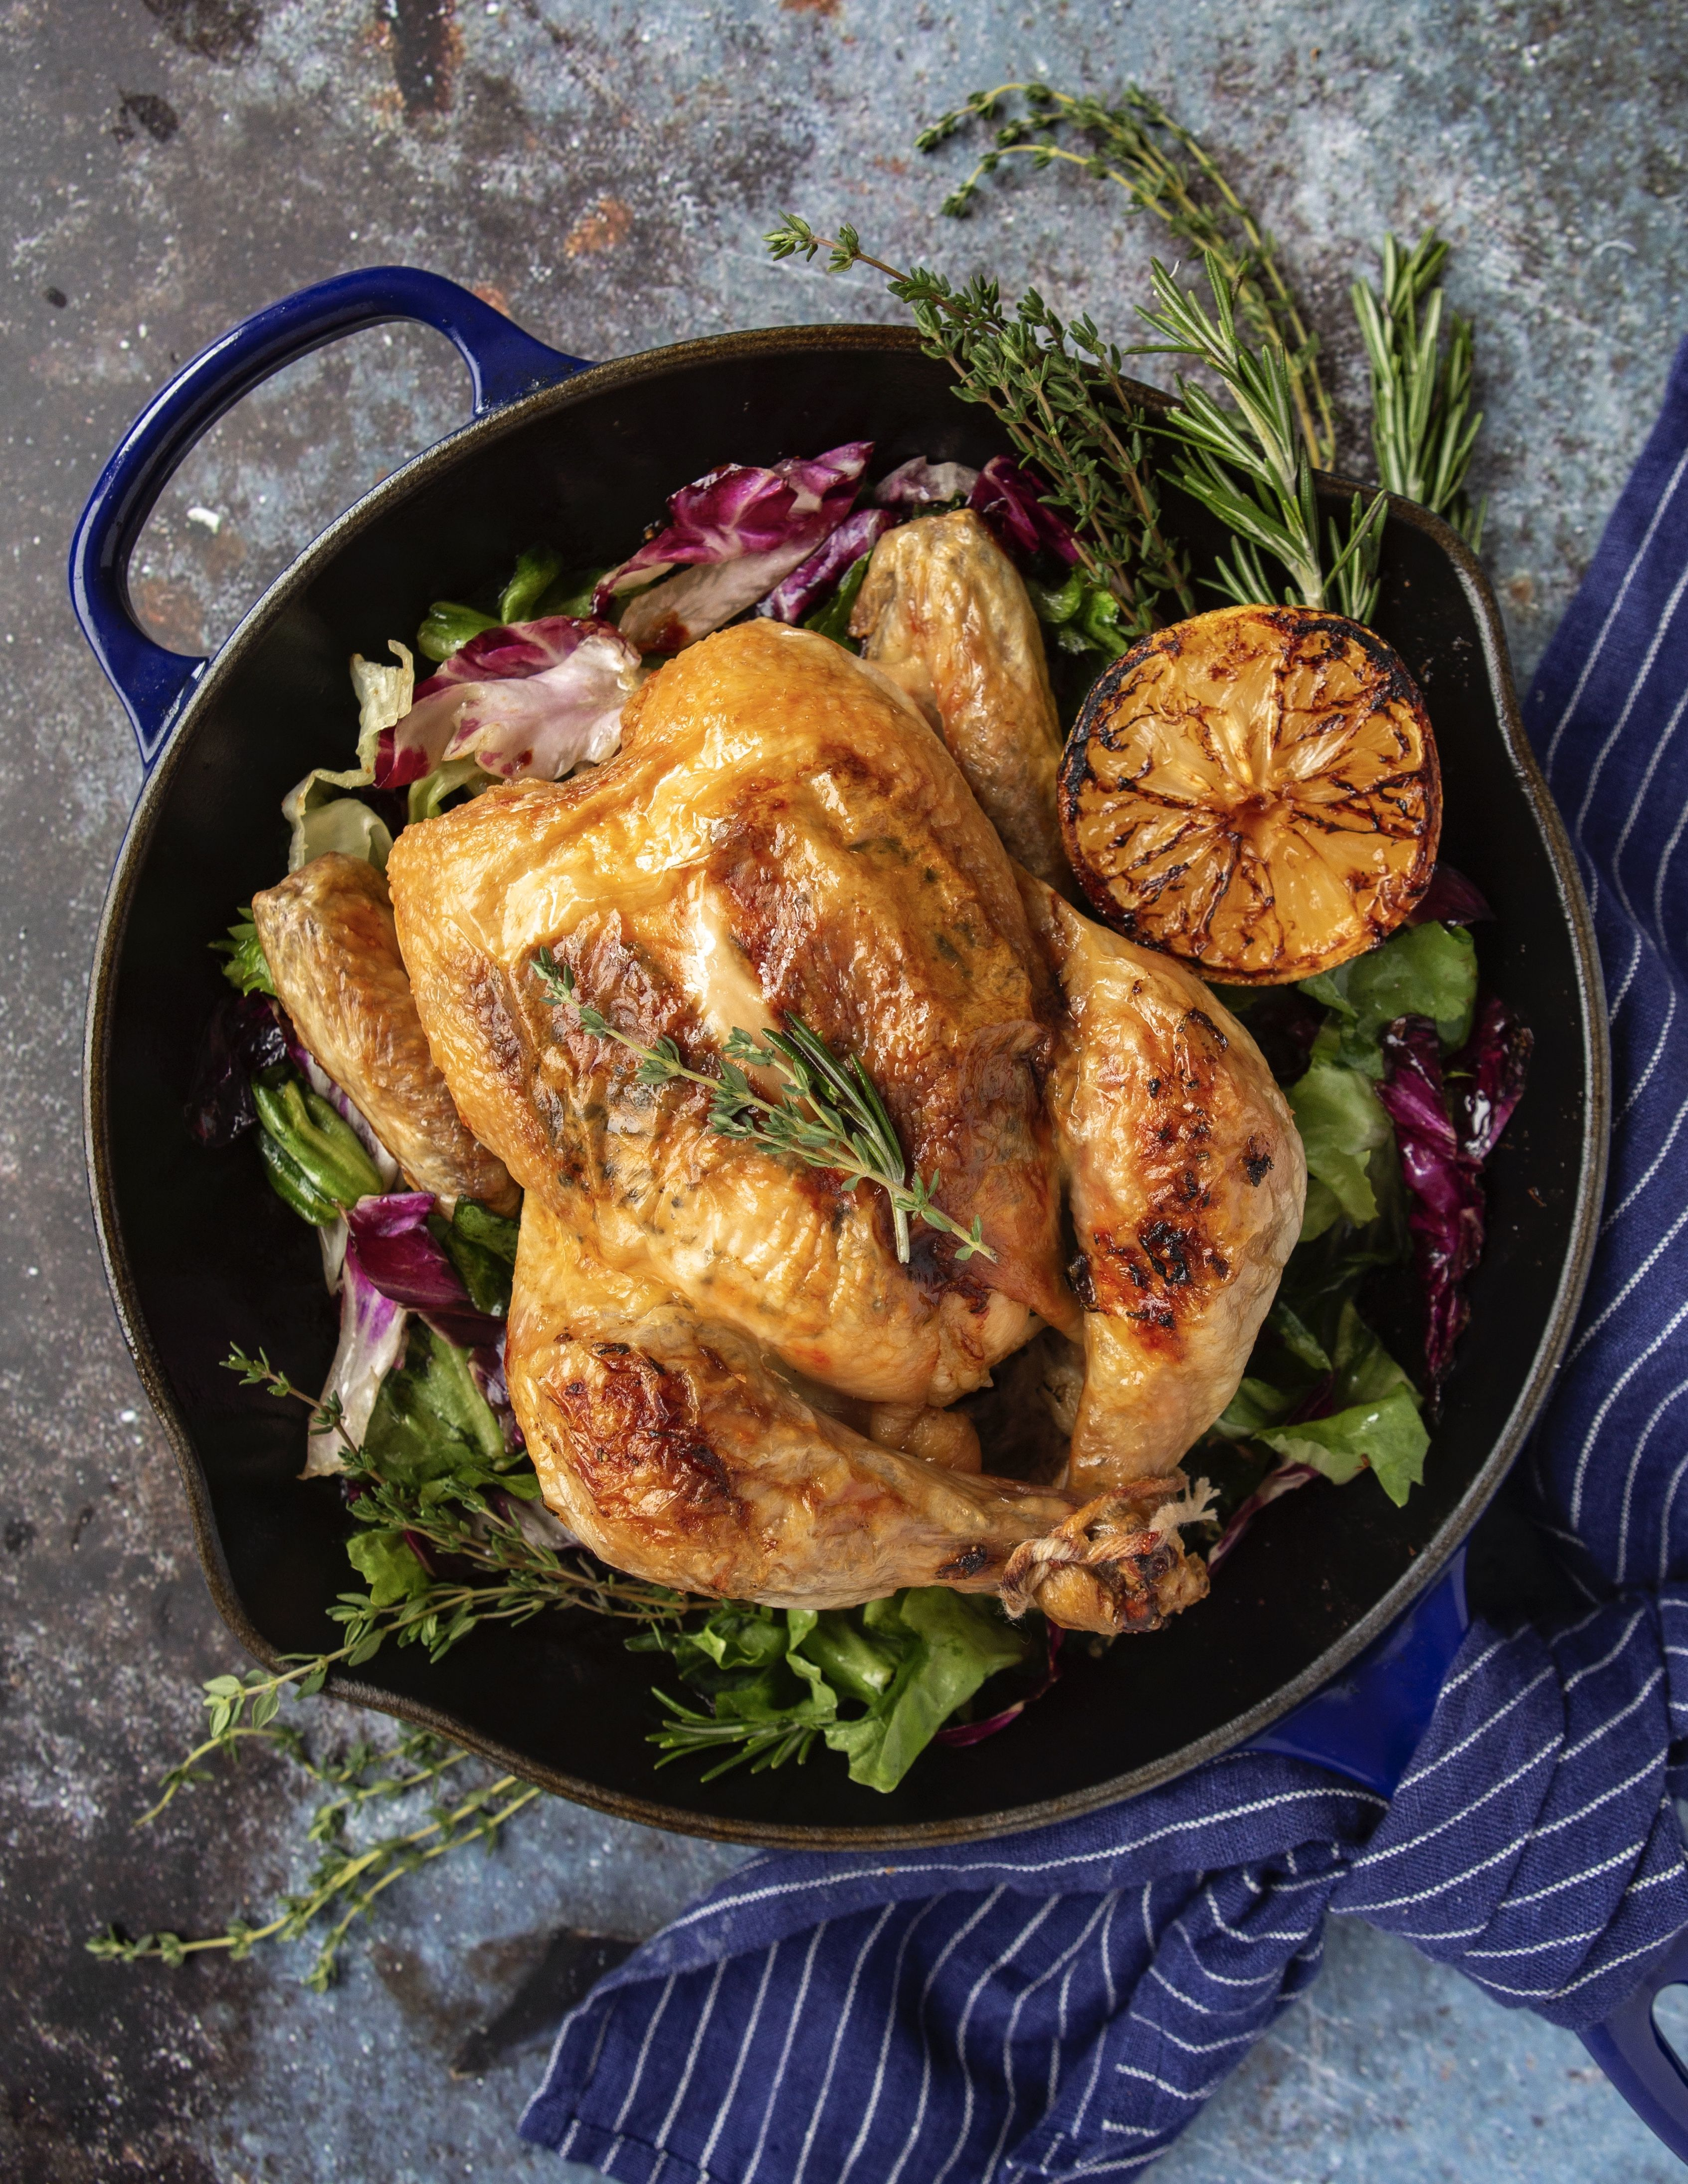 Herb Roasted Chicken with Braised Escarole and Radicchio